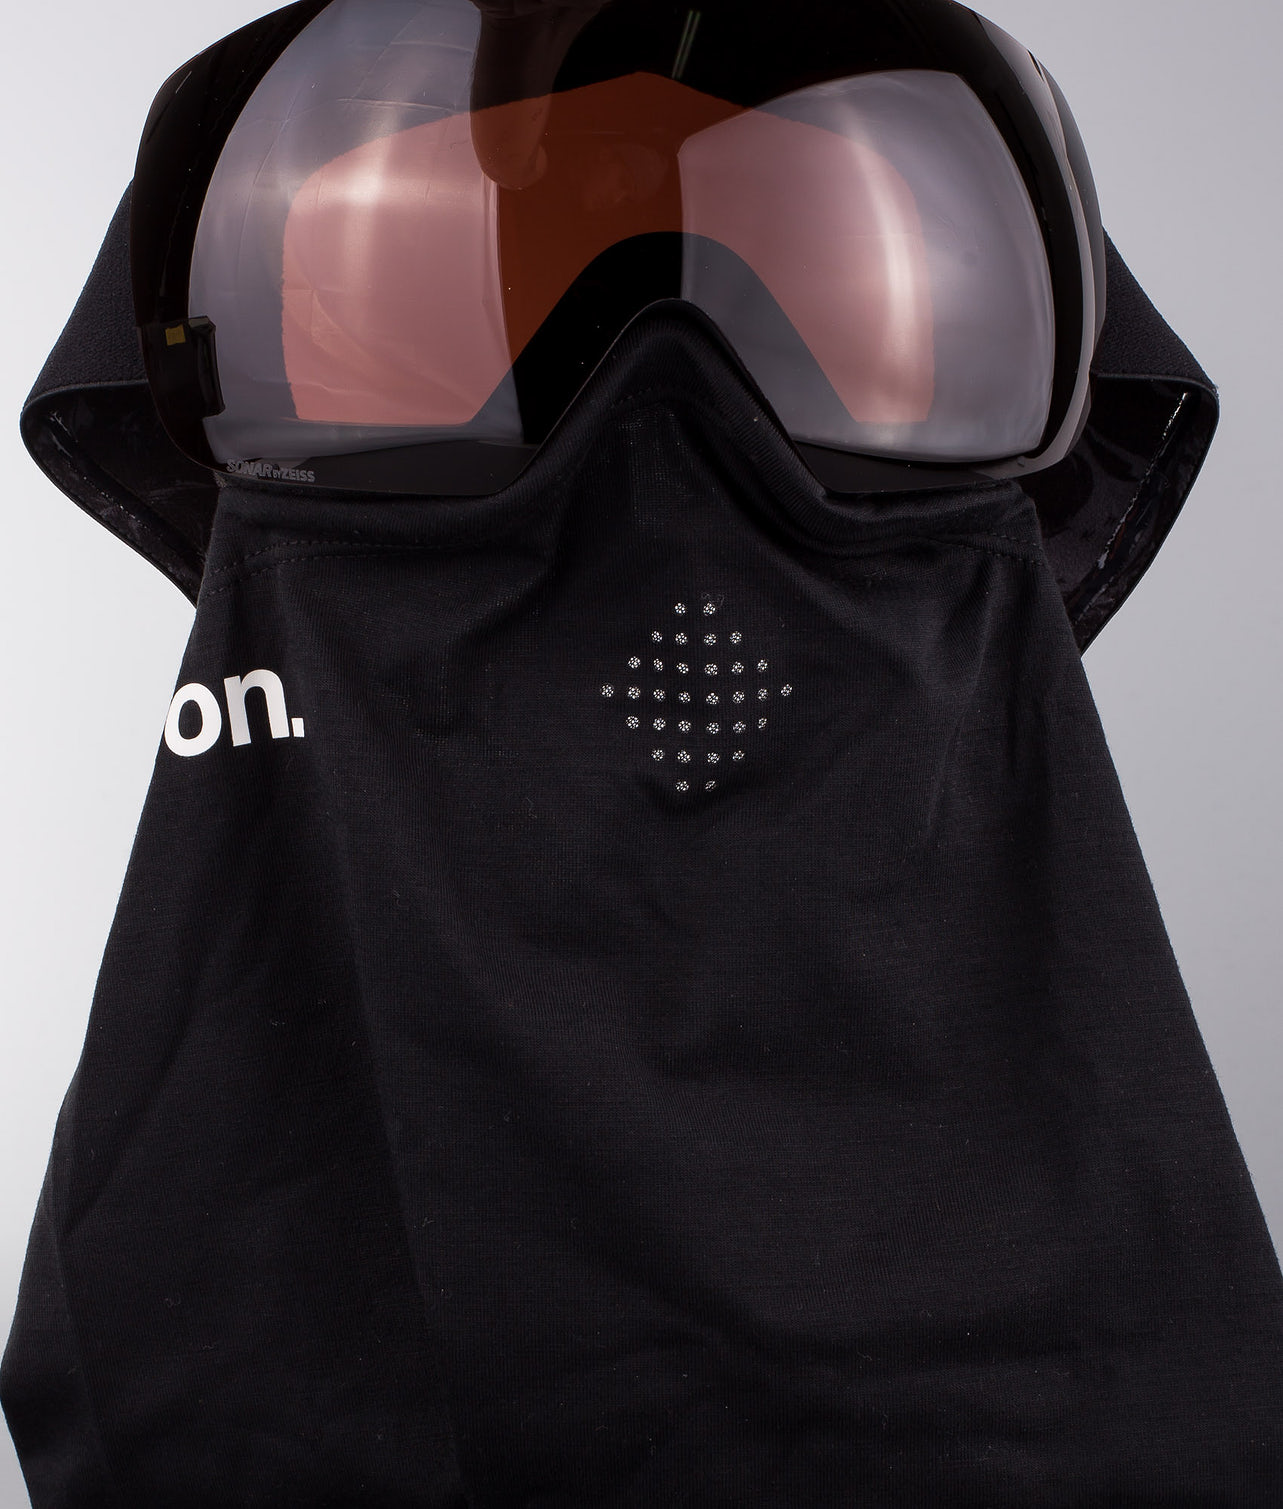 Buy Mig Mfi Ski Goggle from Anon at Ridestore.com - Always free shipping, free returns and 30 days money back guarantee